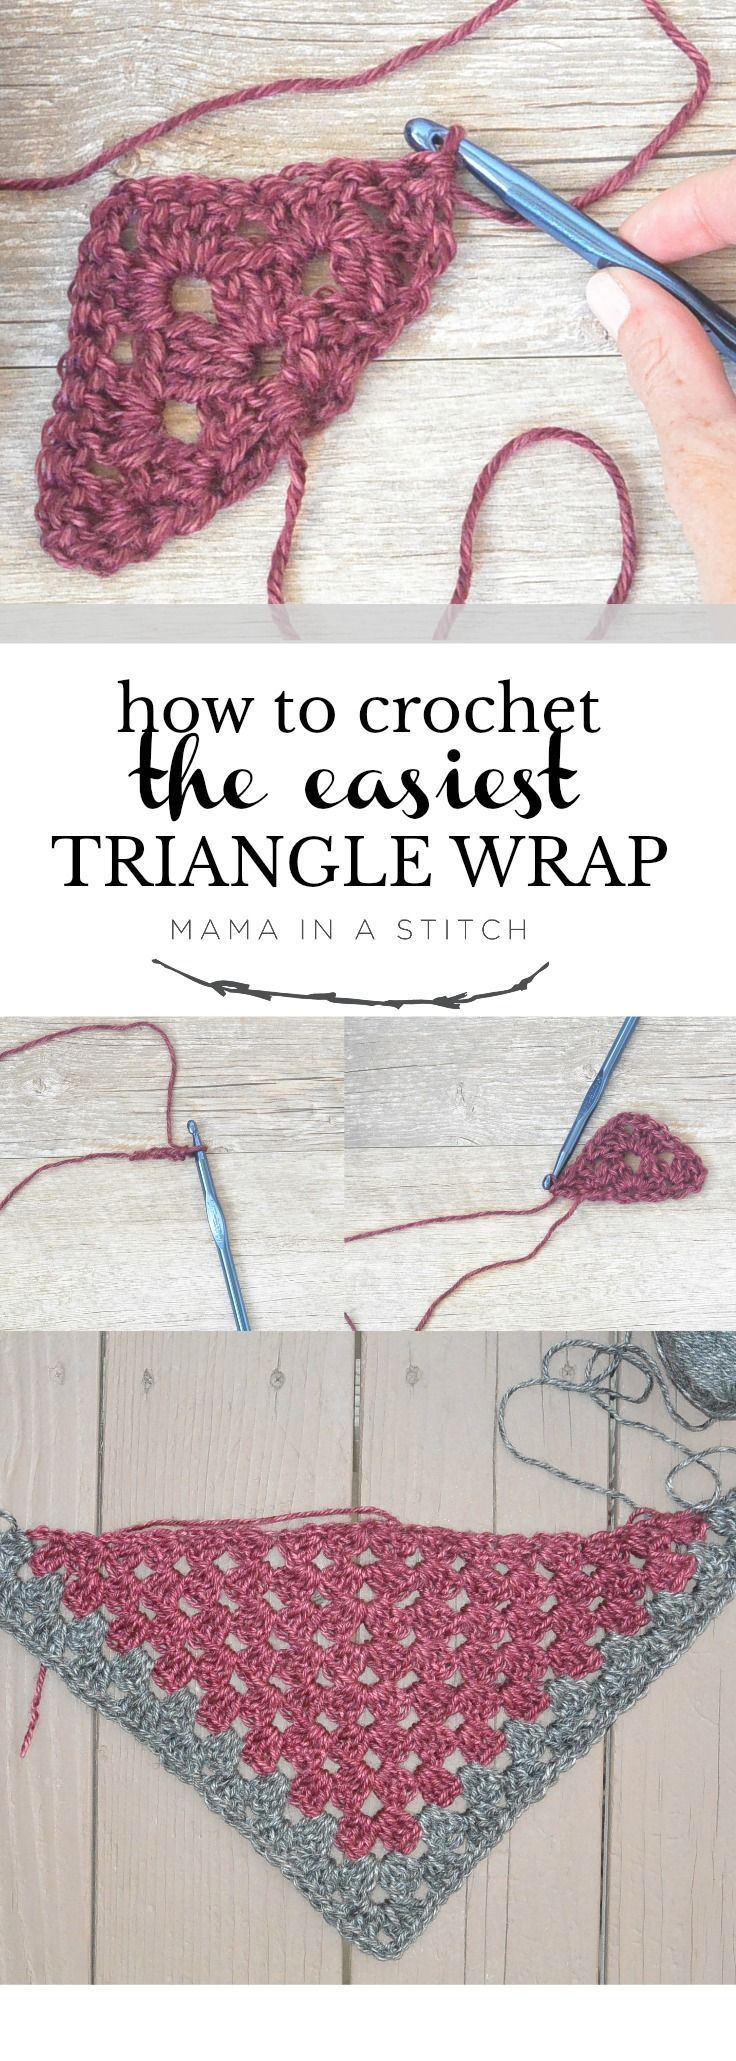 How To Crochet An Easy Granny Triangle | Chal, Ganchillo y Guantes